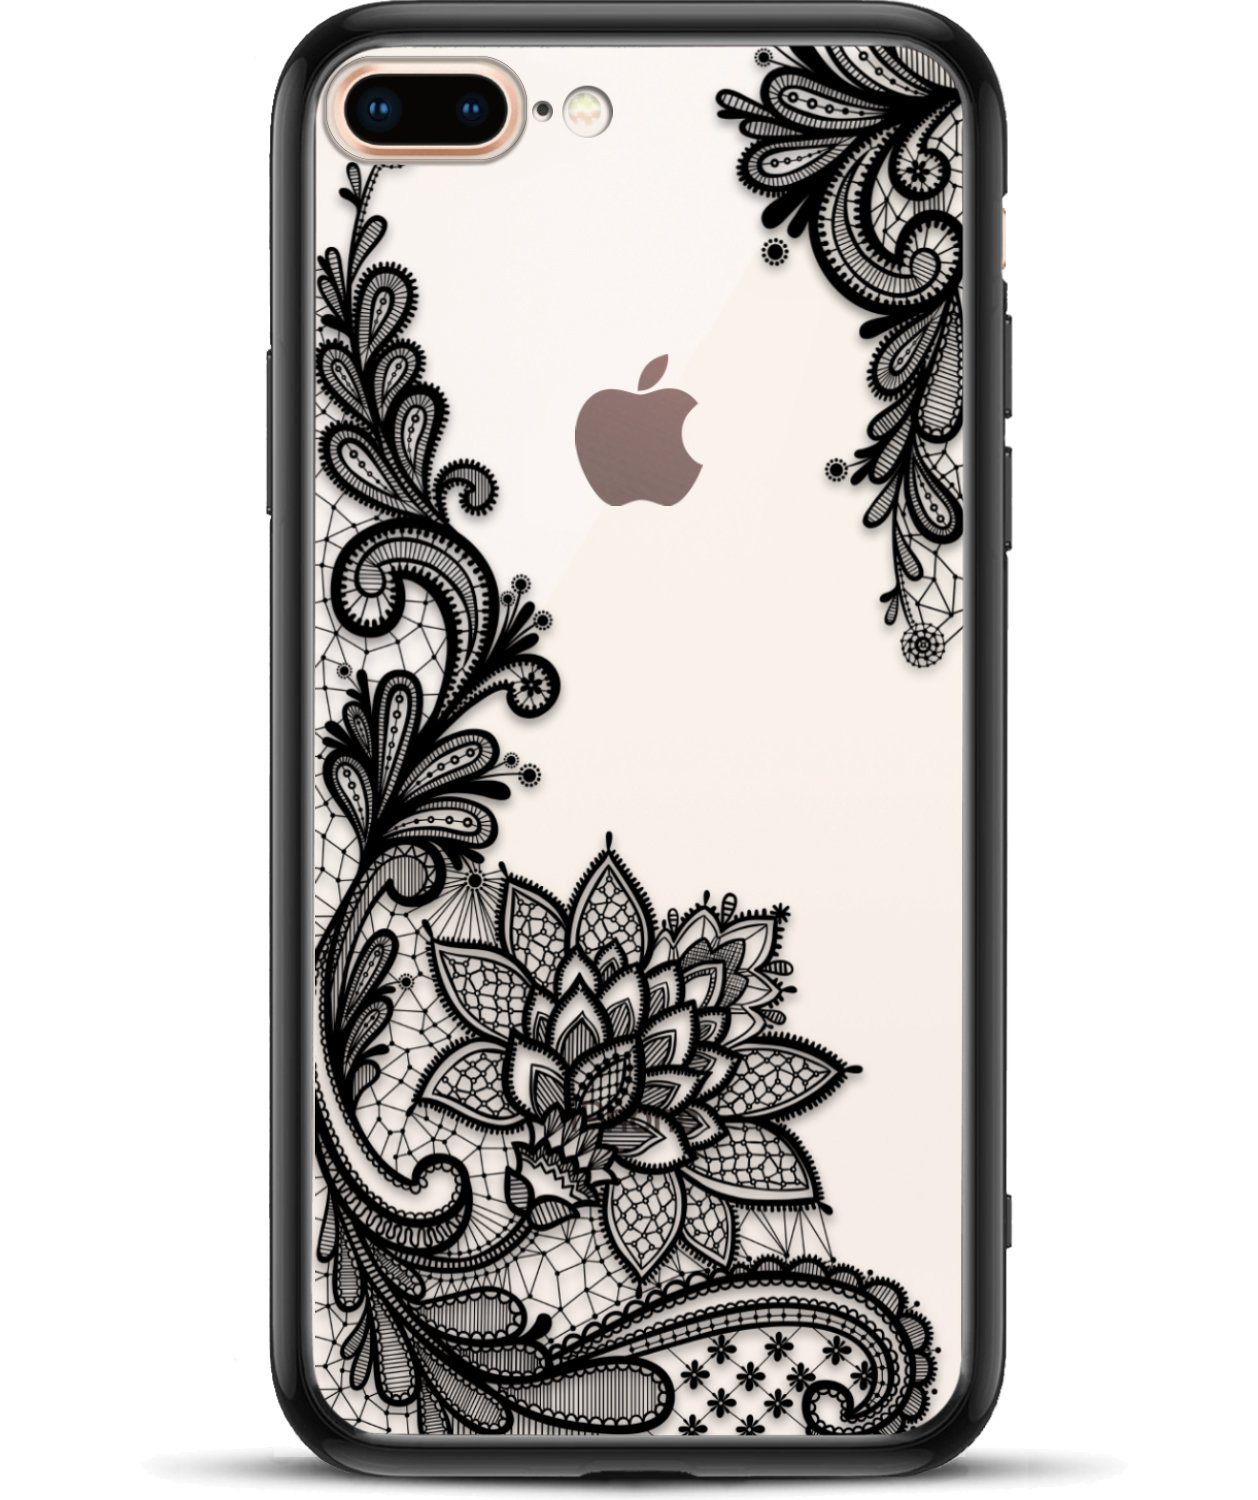 Prosidio Tm   Apple I Phone 8 Plus 7 Plus Case For Girls Women   Matte Clear Phone Case Cute Black Floral Design Shockproof Protective Slim Ultra Thin Hard Back Cover Rubber Bumper Cool Flowers Henna by Prosidio